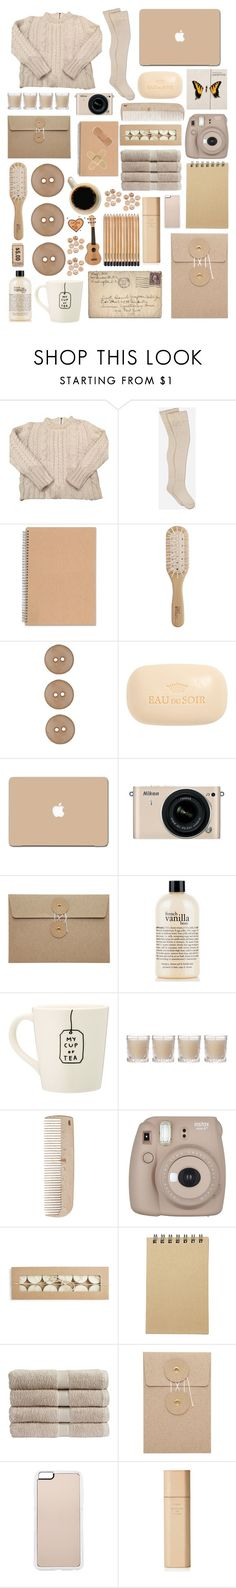 """""""Why can't I get you off of my mind?..."""" by emo-kyleigh ❤ liked on Polyvore featuring Claudie Pierlot, UGG, Philip Kingsley, Sisley, 3M, Nikon, philosophy, Shabby Chic, HAY and Fujifilm"""